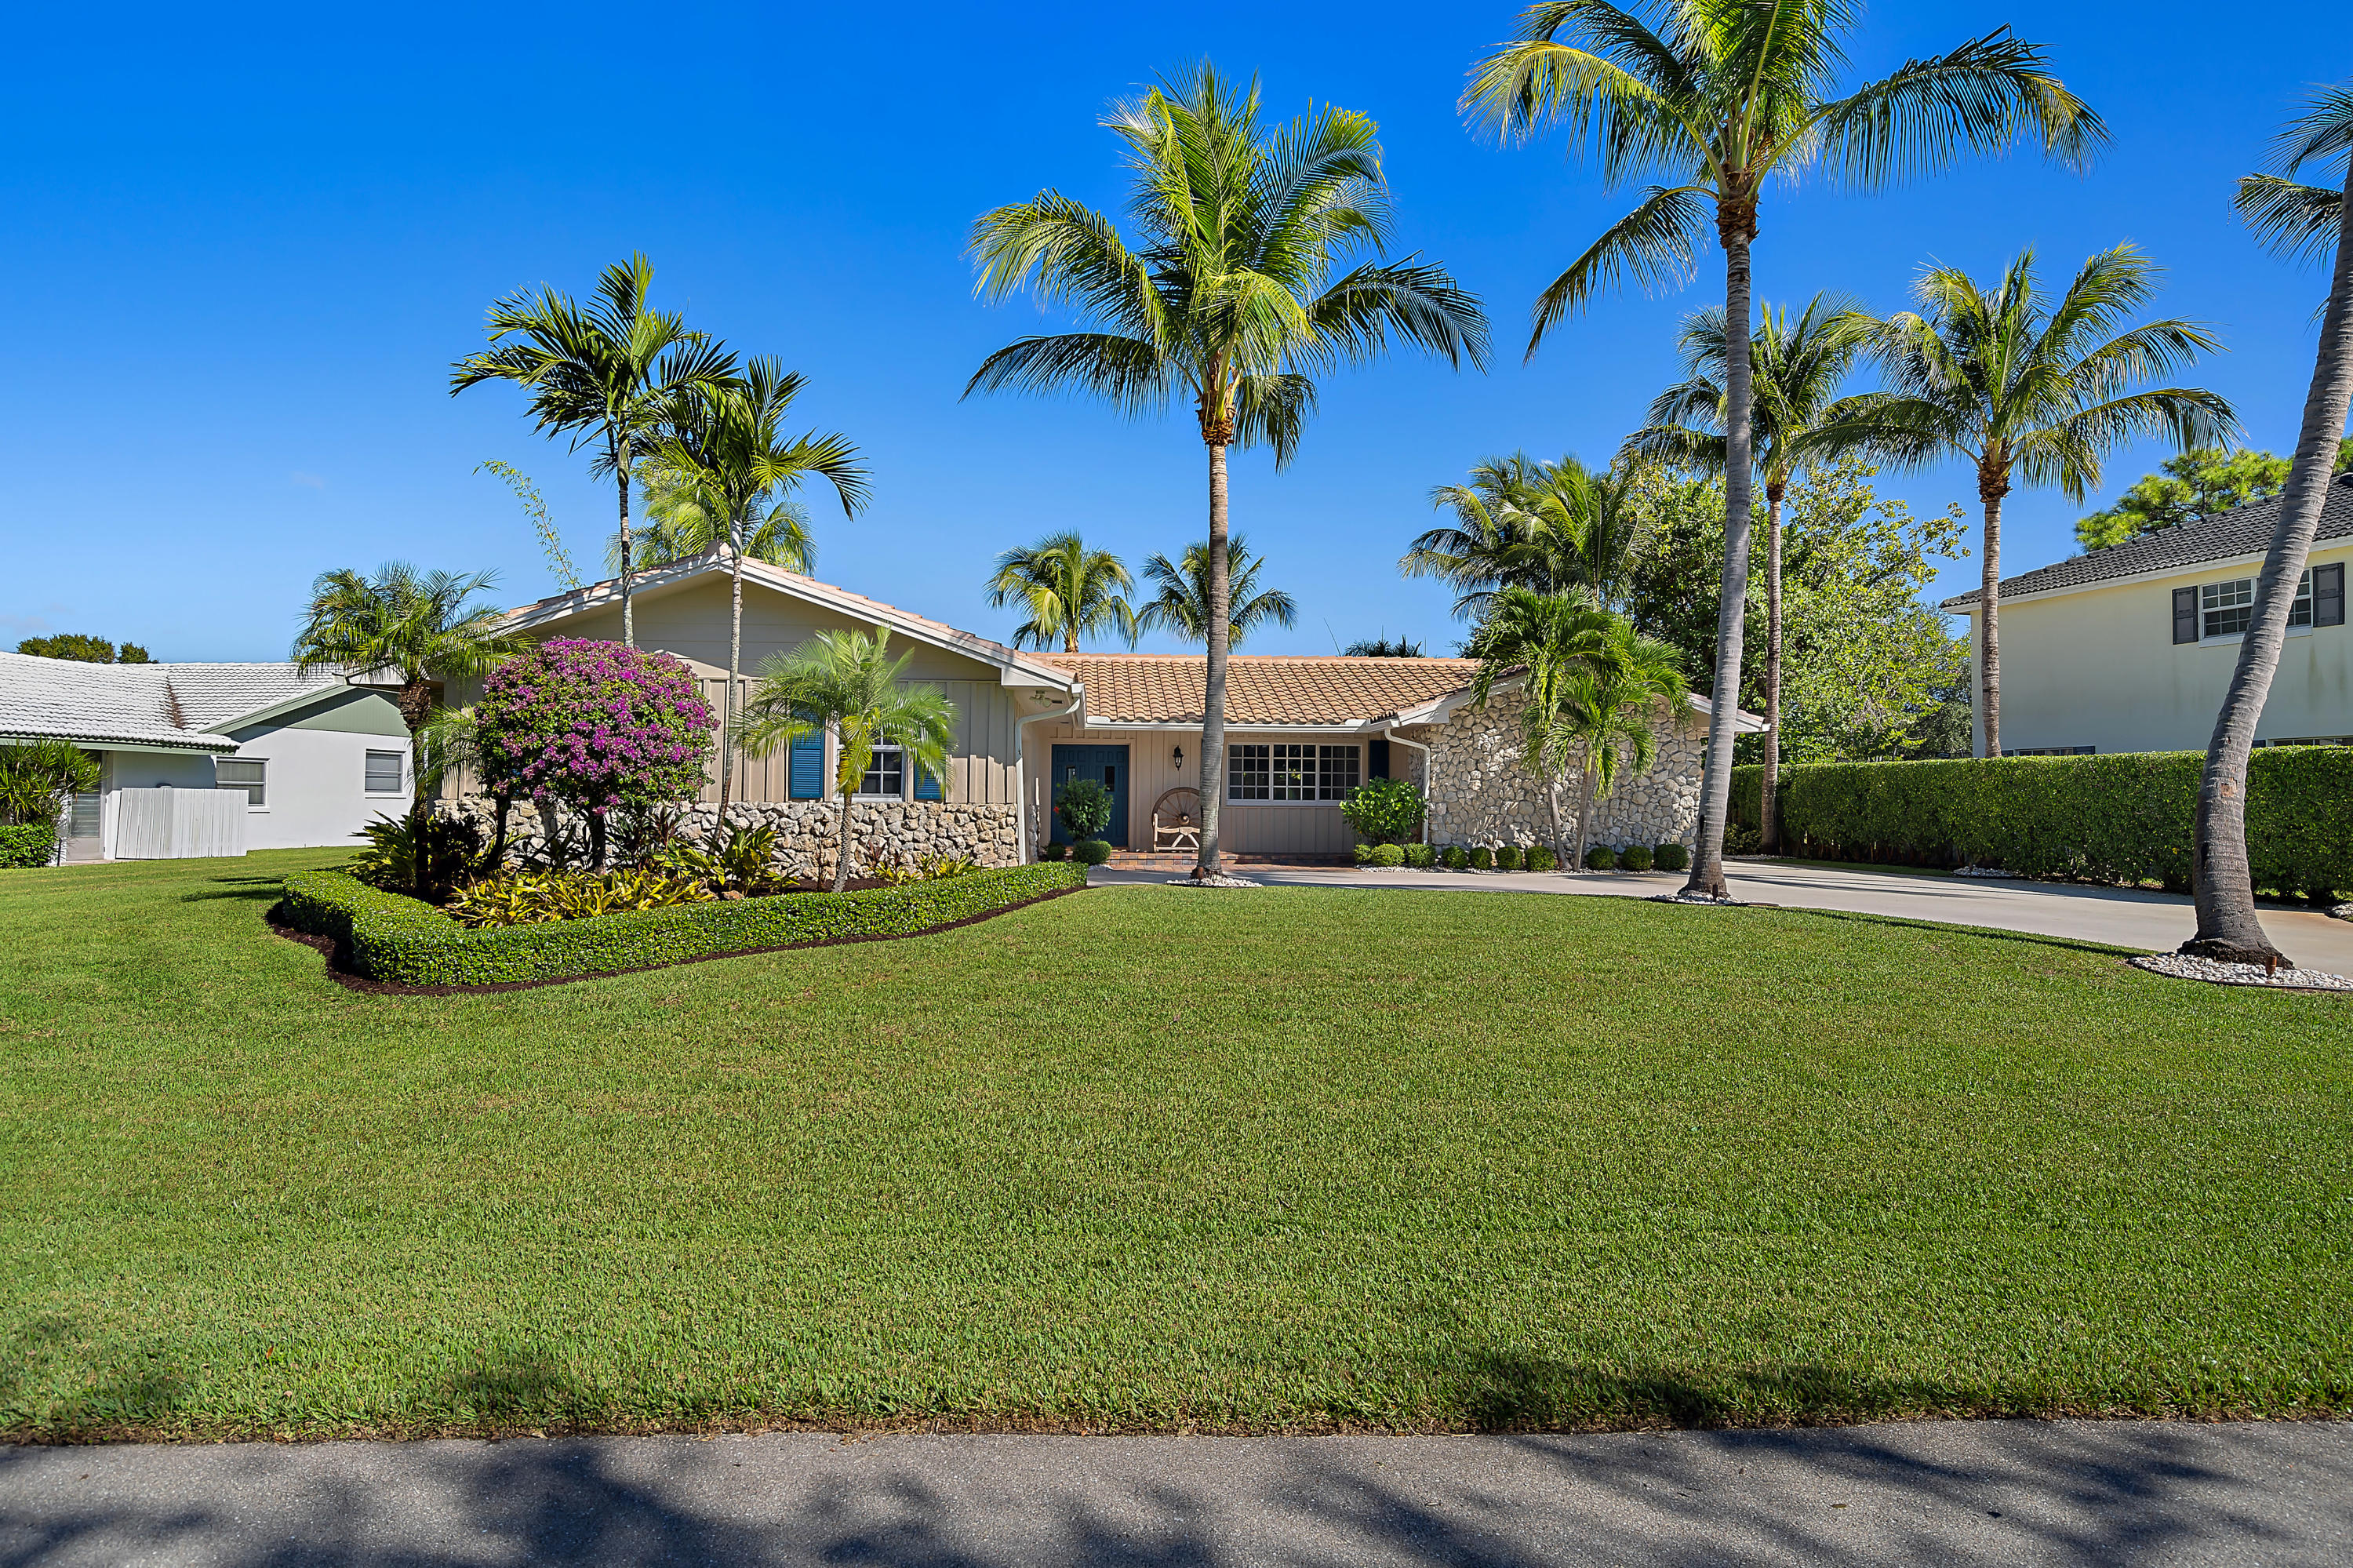 4161 Hickory Drive, Palm Beach Gardens, Florida 33418, 3 Bedrooms Bedrooms, ,3 BathroomsBathrooms,A,Single family,Hickory,RX-10490830